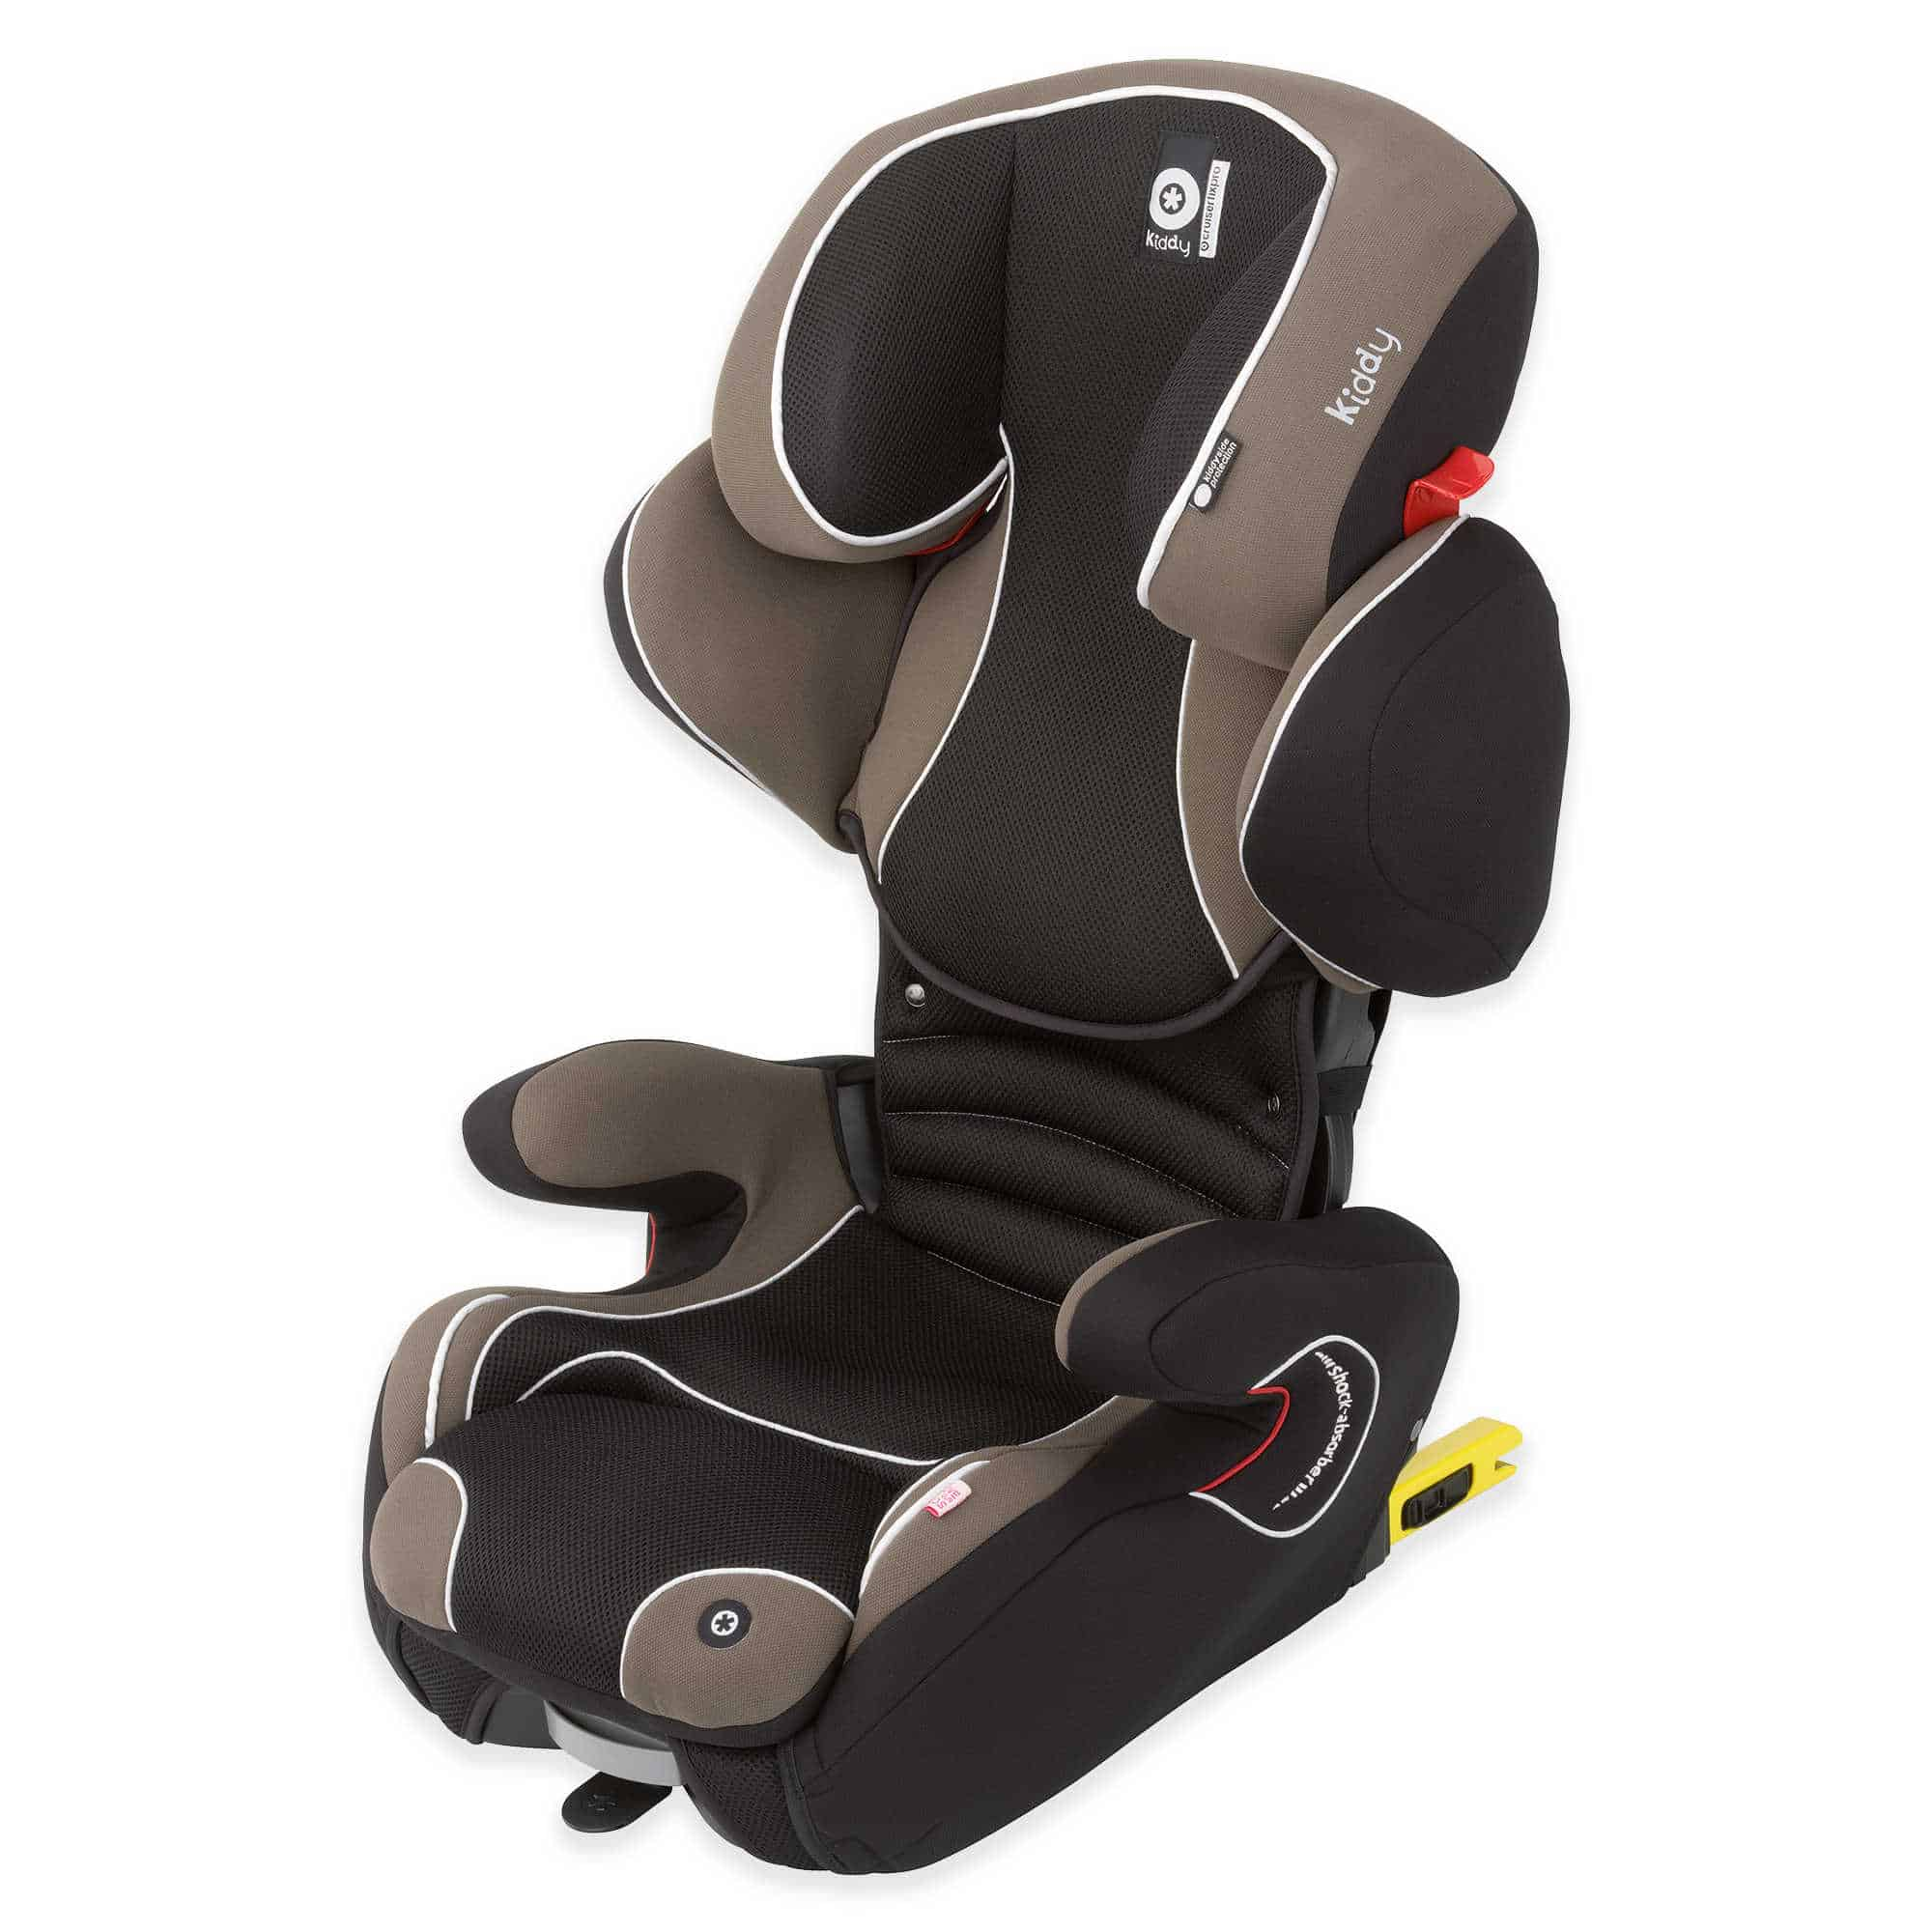 Booster Car Seat review: Kiddy CruiserFix Pro